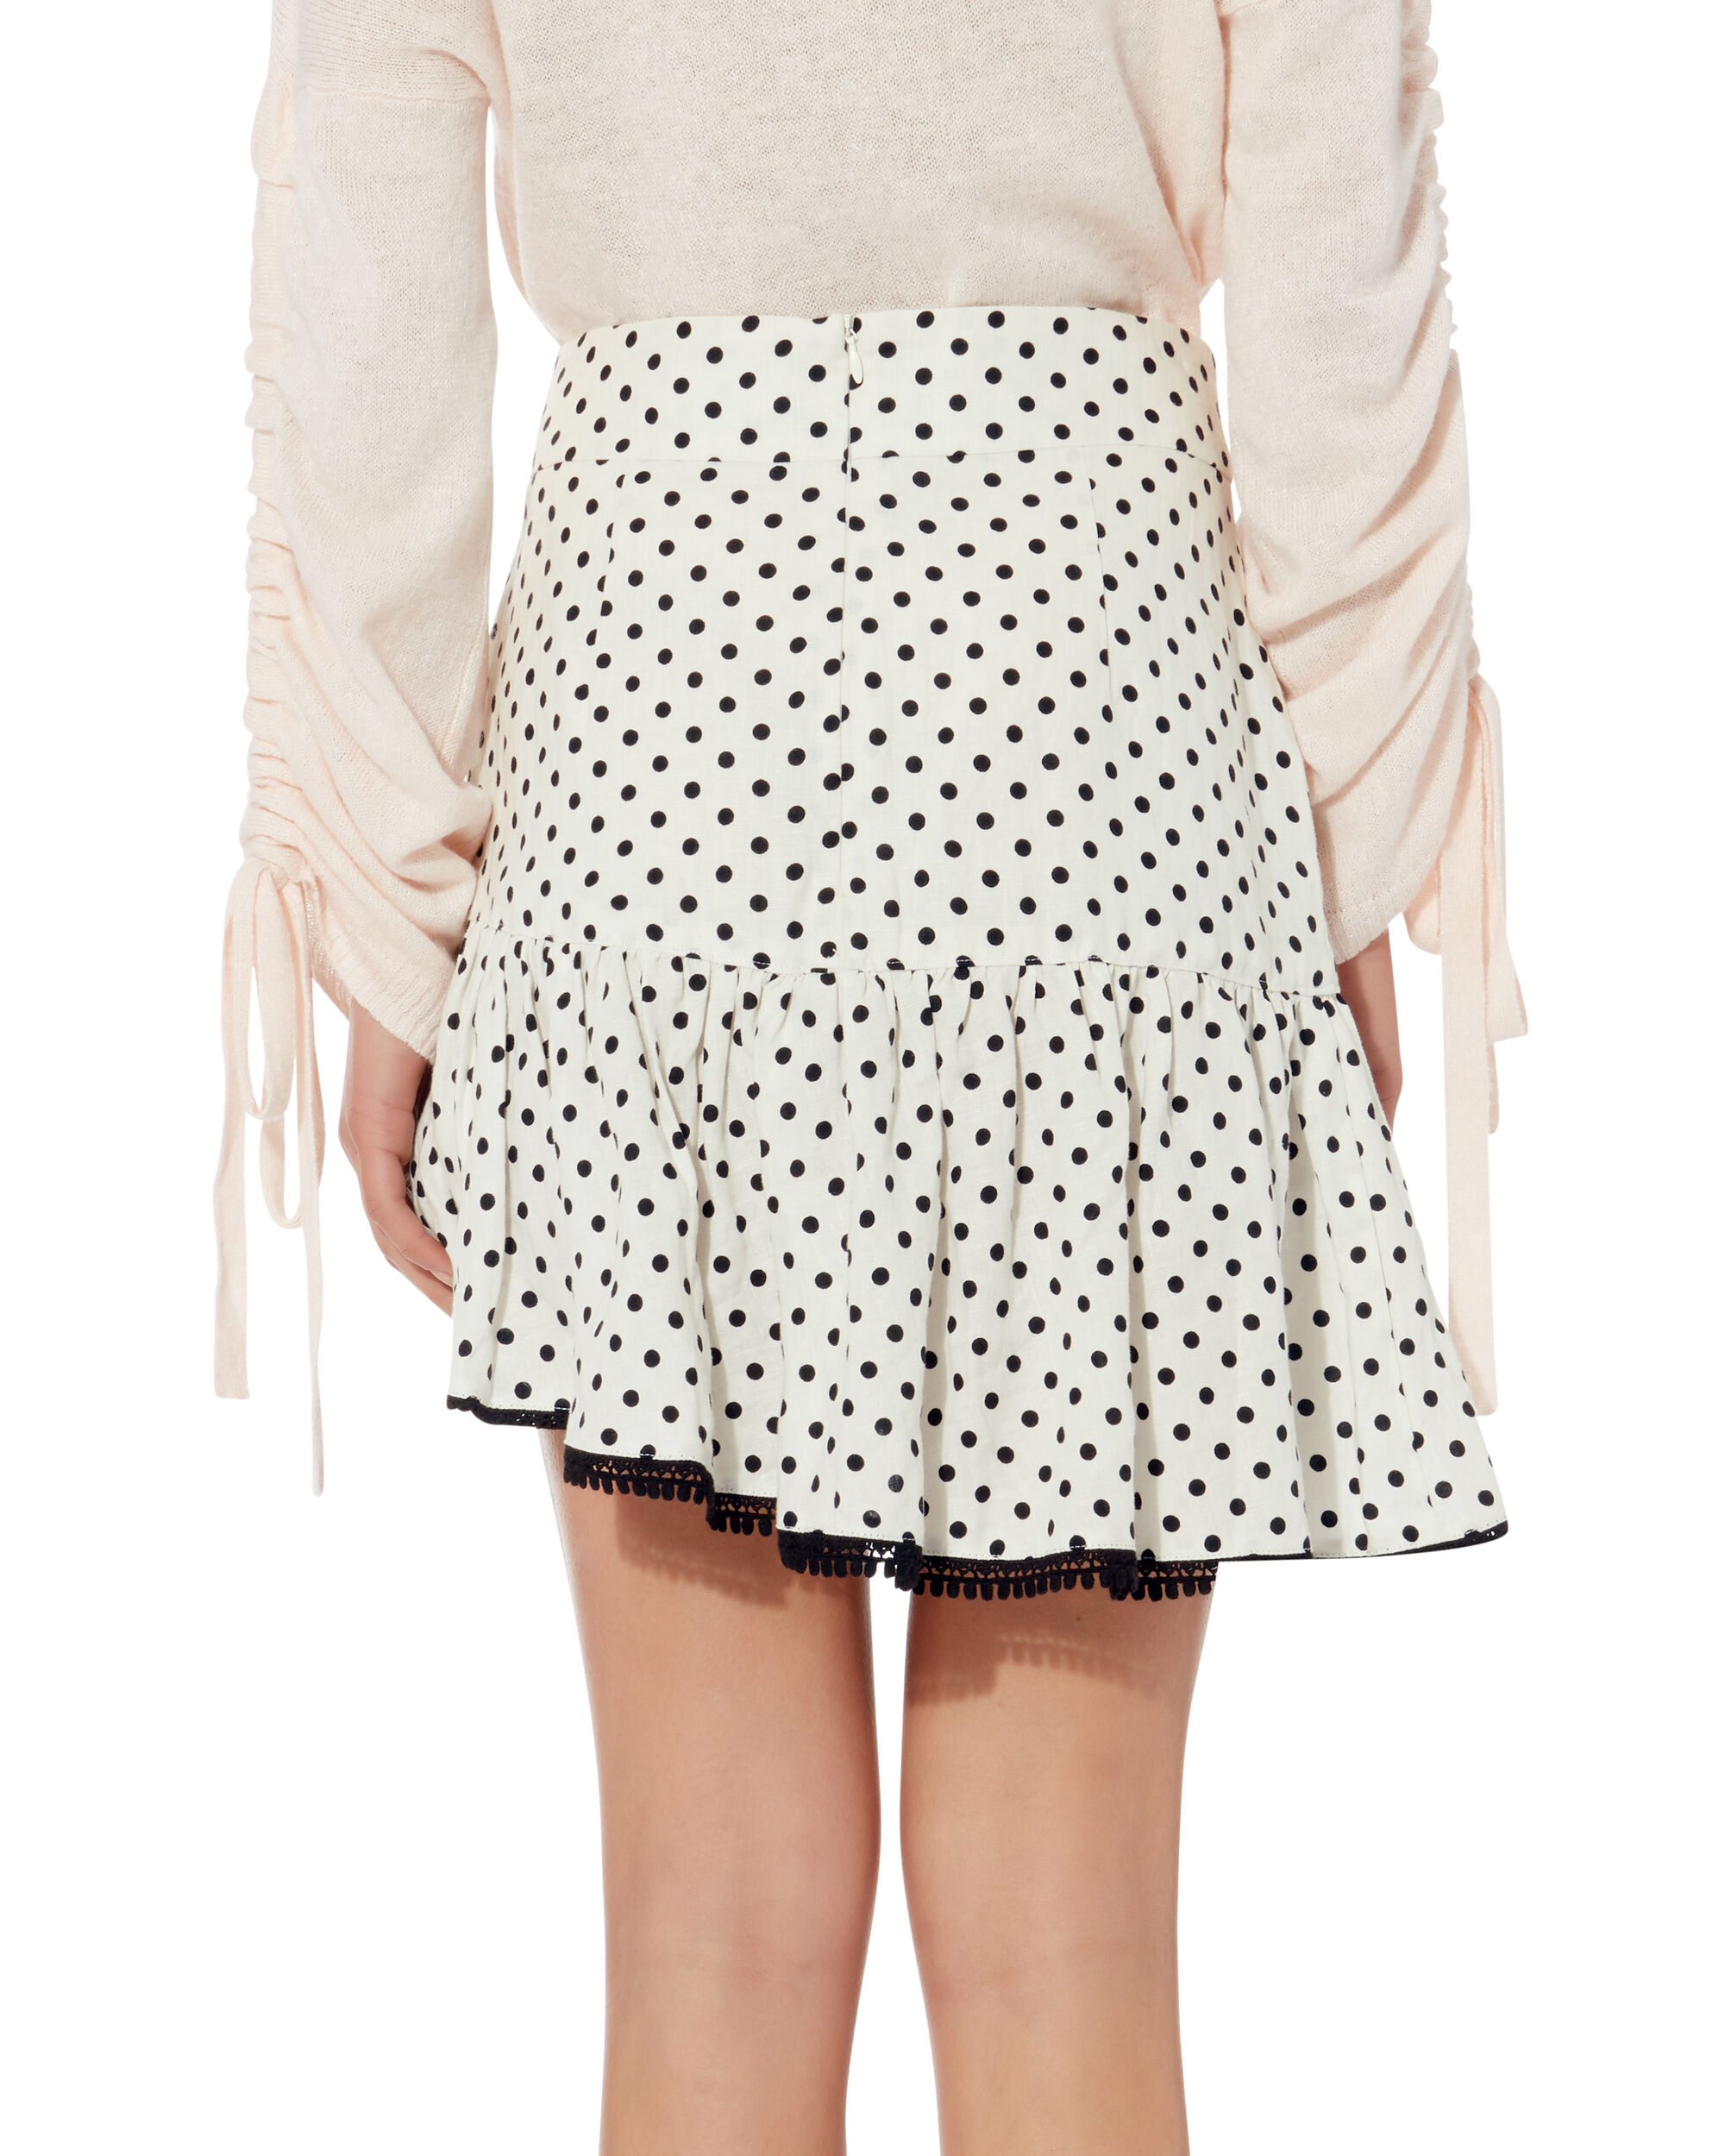 Frill Polka Dot Mini Skirt, BLK/WHT, hi-res